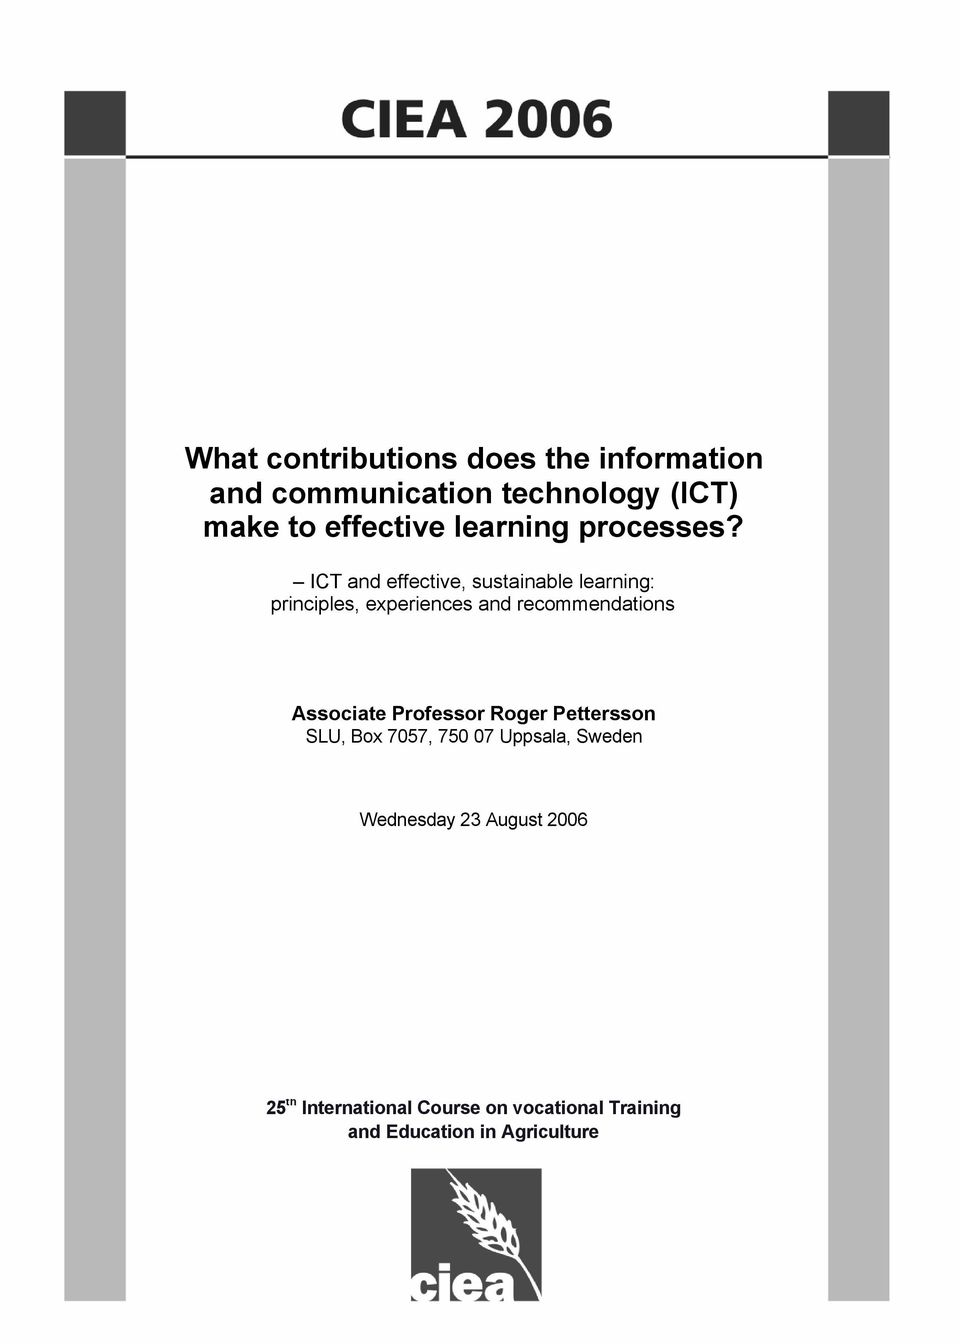 ICT and effective, sustainable learning: principles, experiences and recommendations